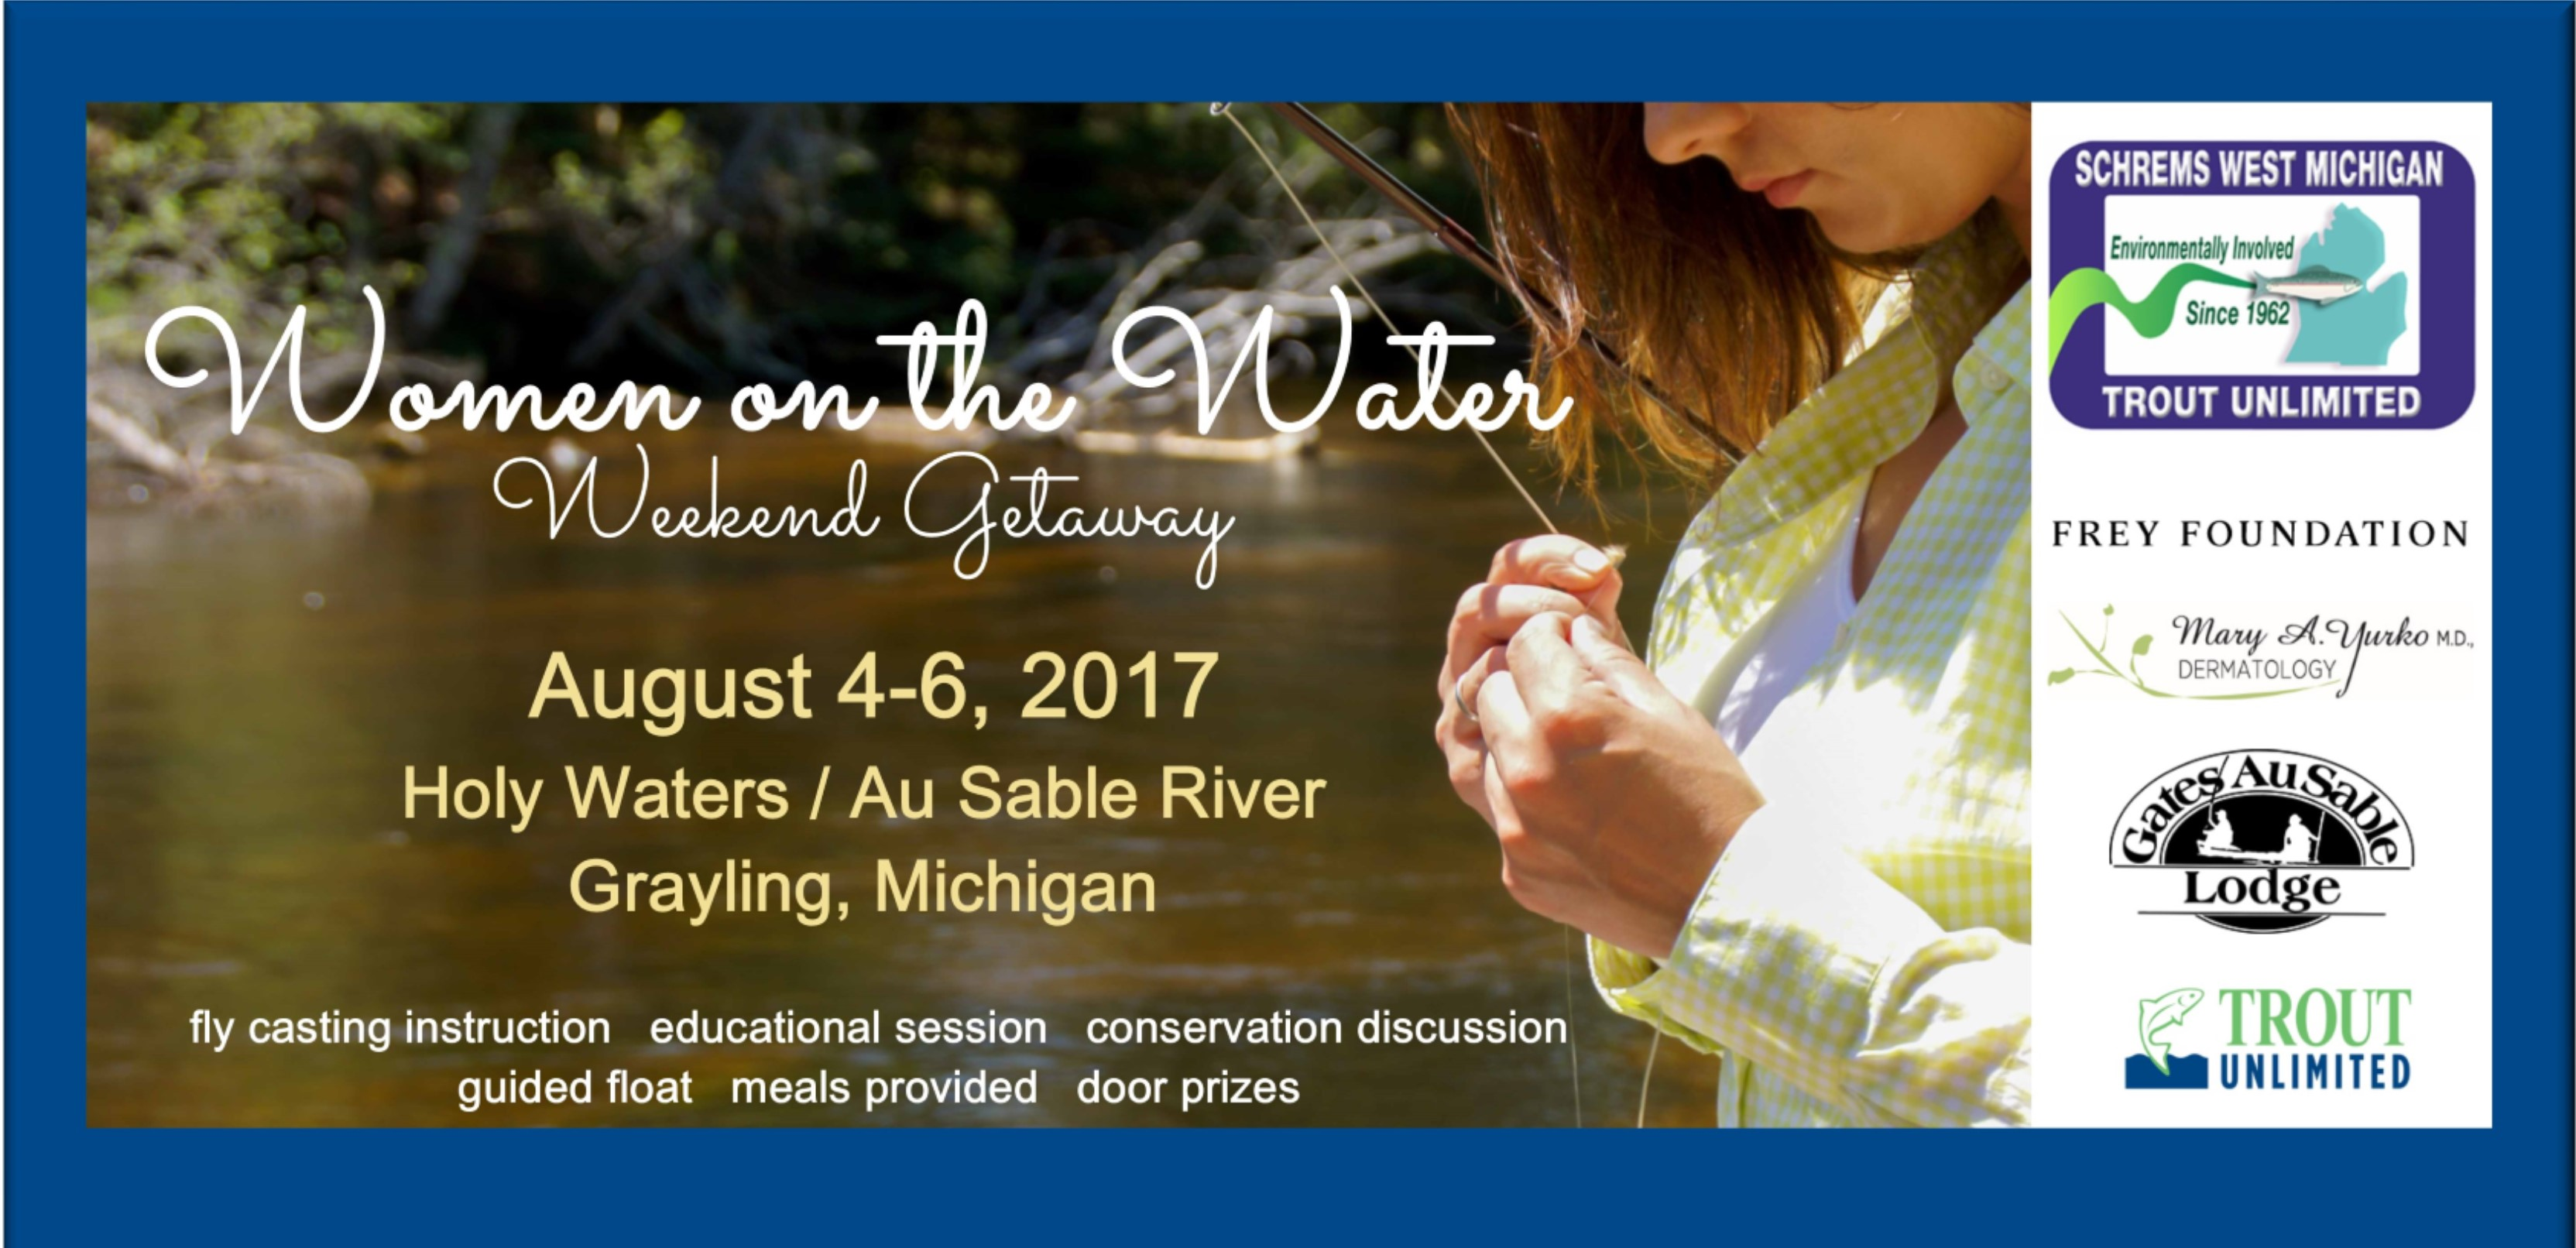 Women on the Water Weekend Getaway